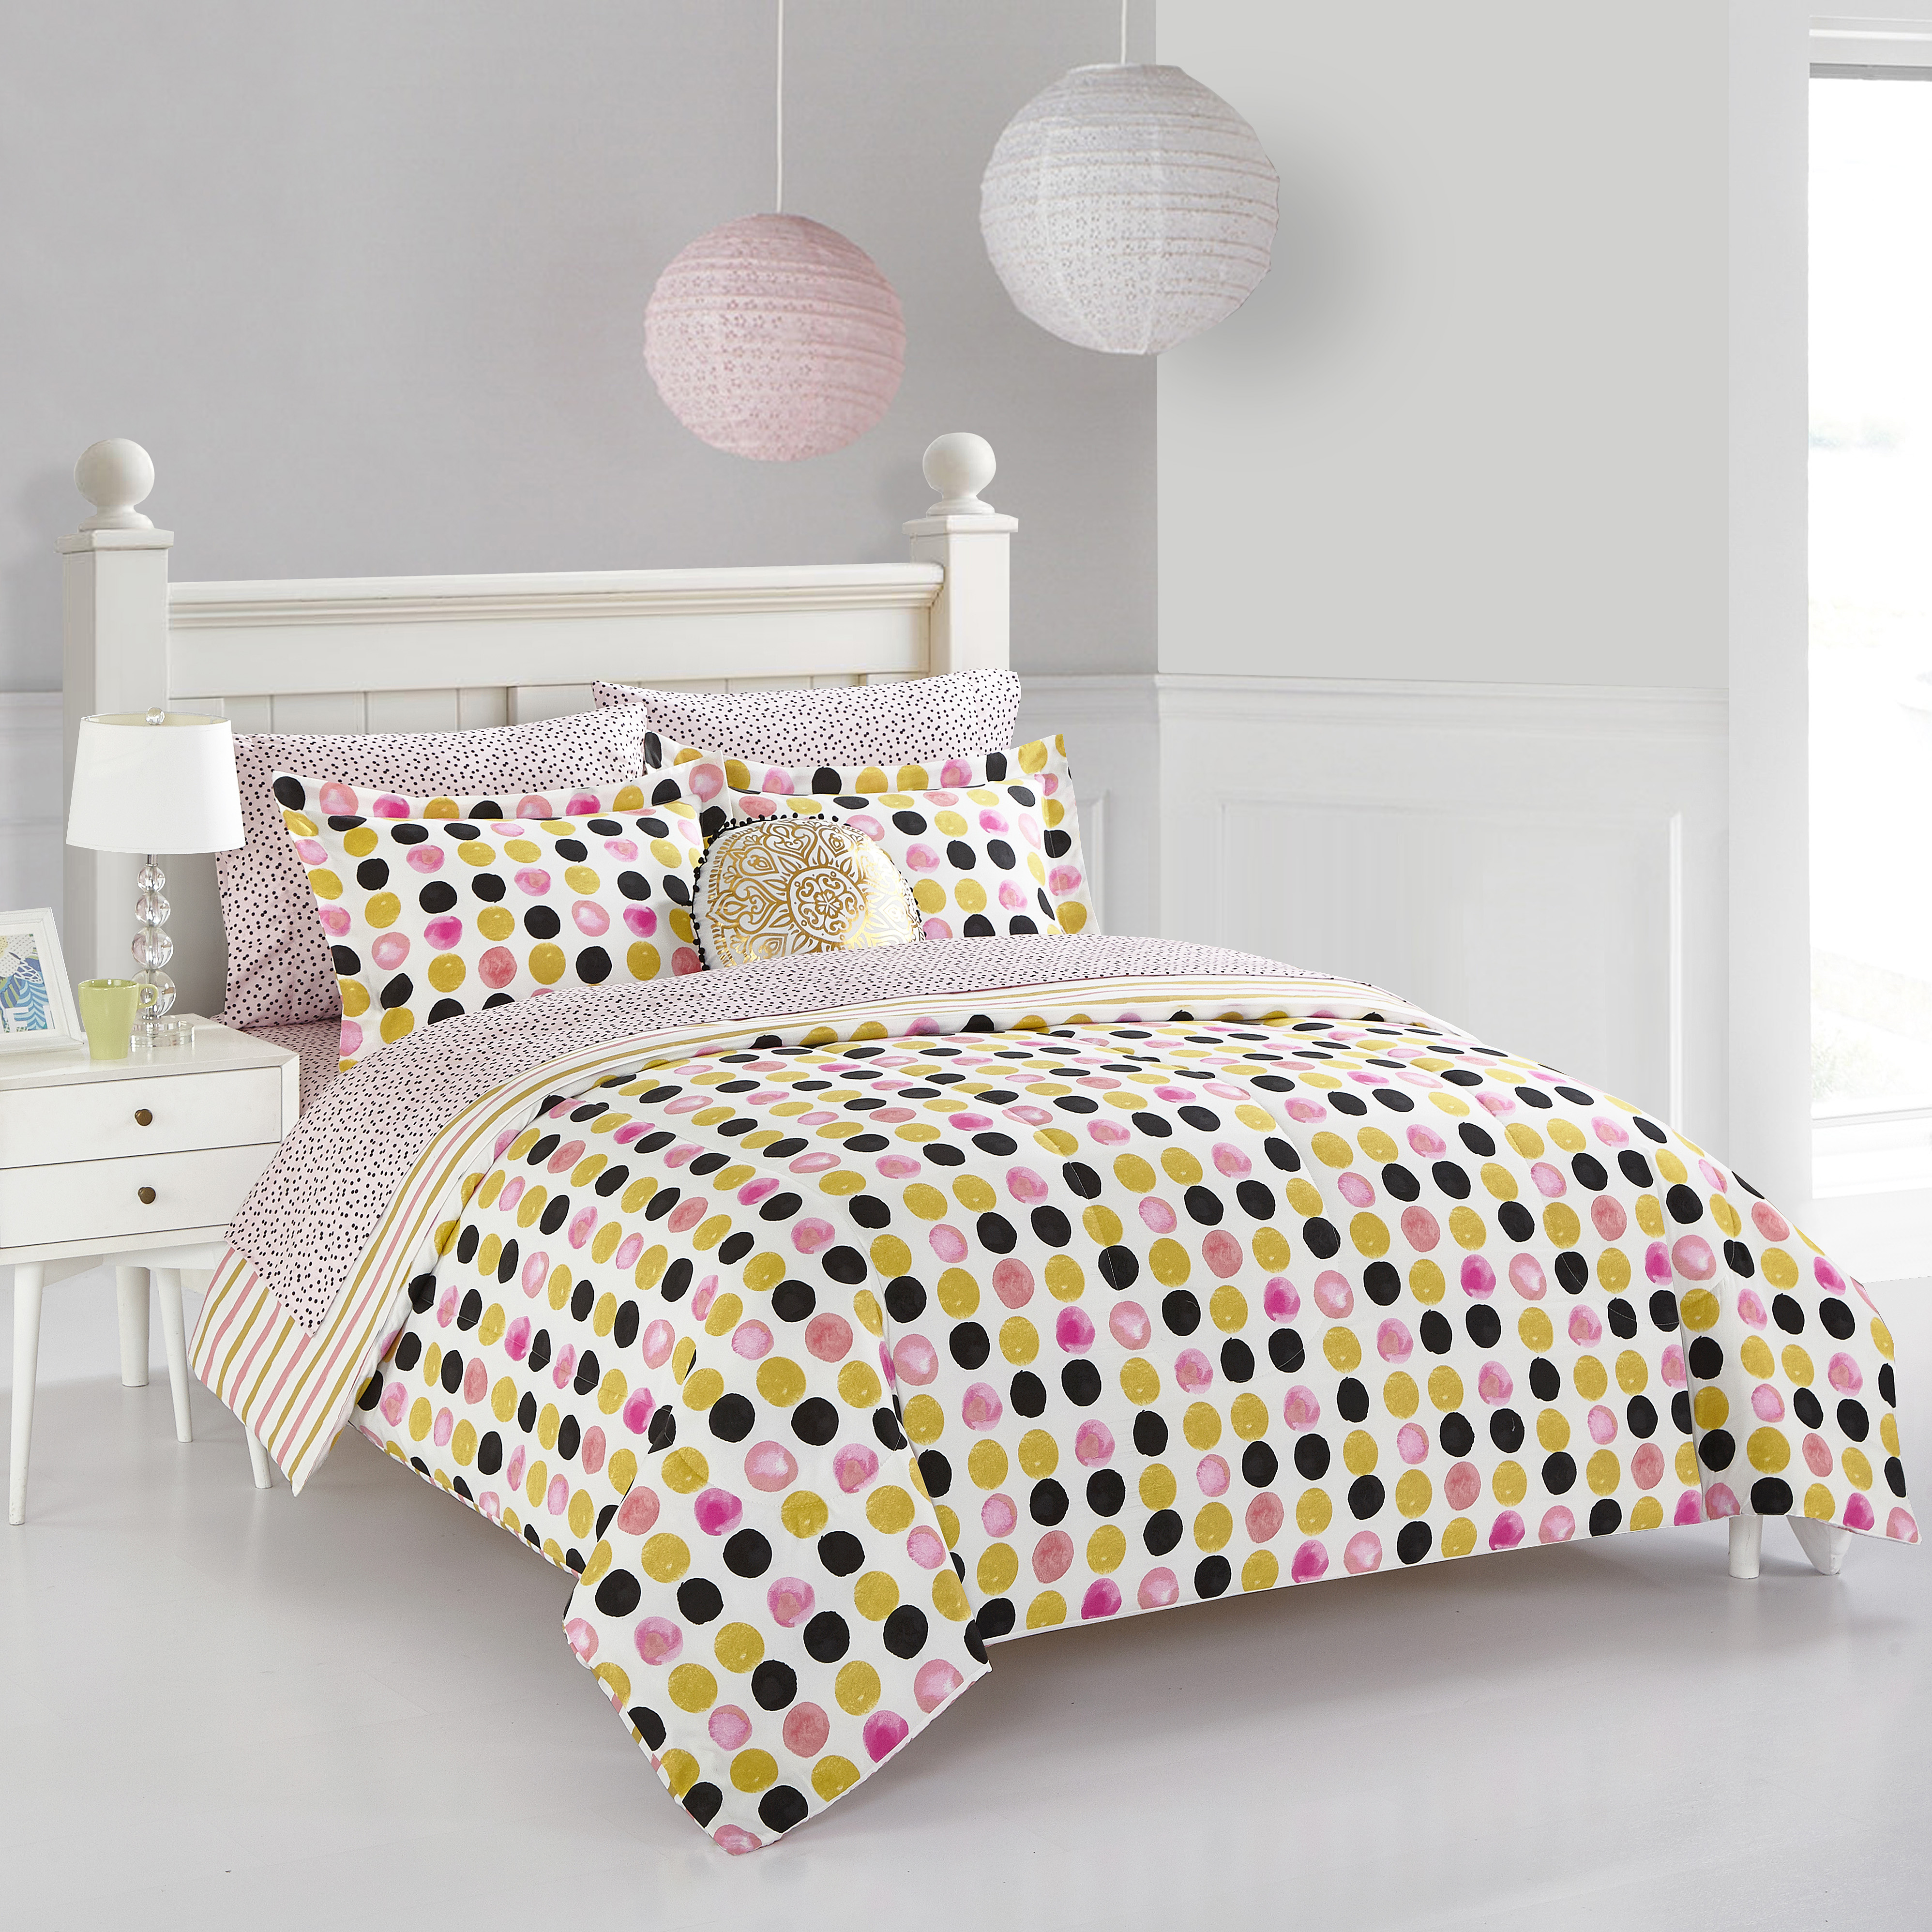 Mainstays spotted dots bed in a bag, Twin-xl